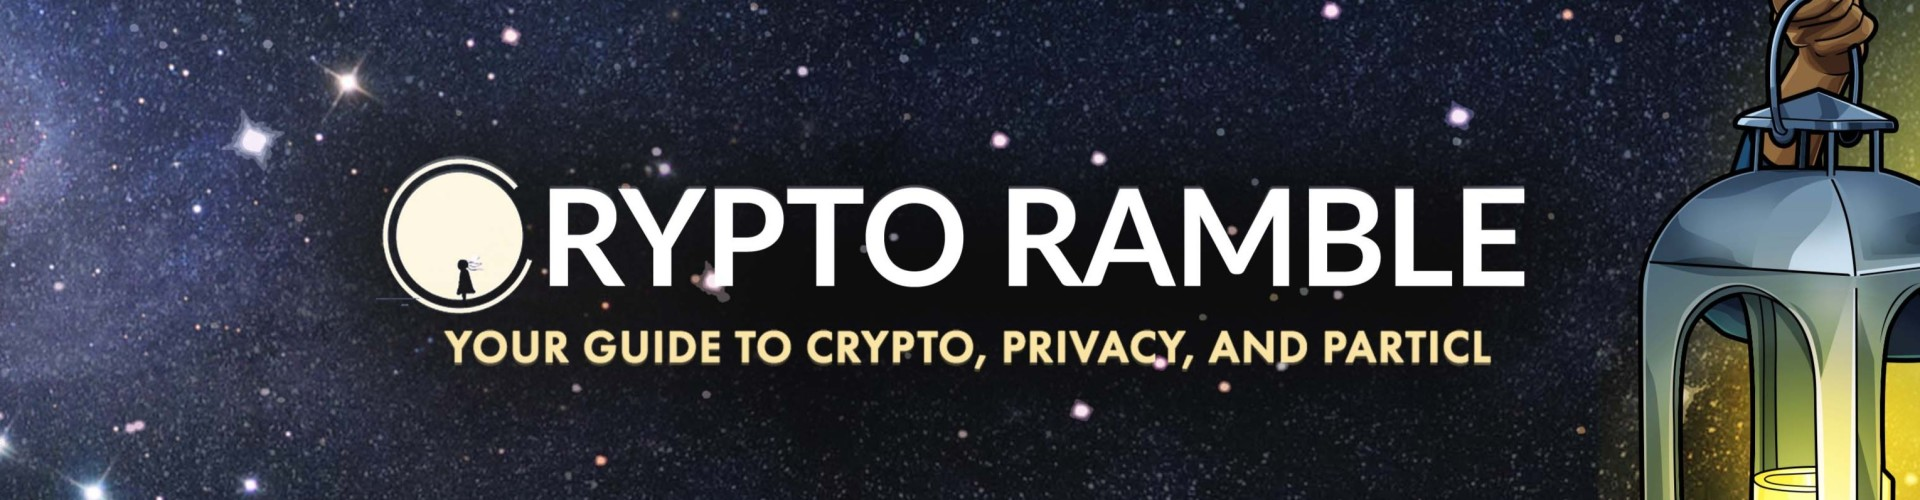 Crypto Ramble